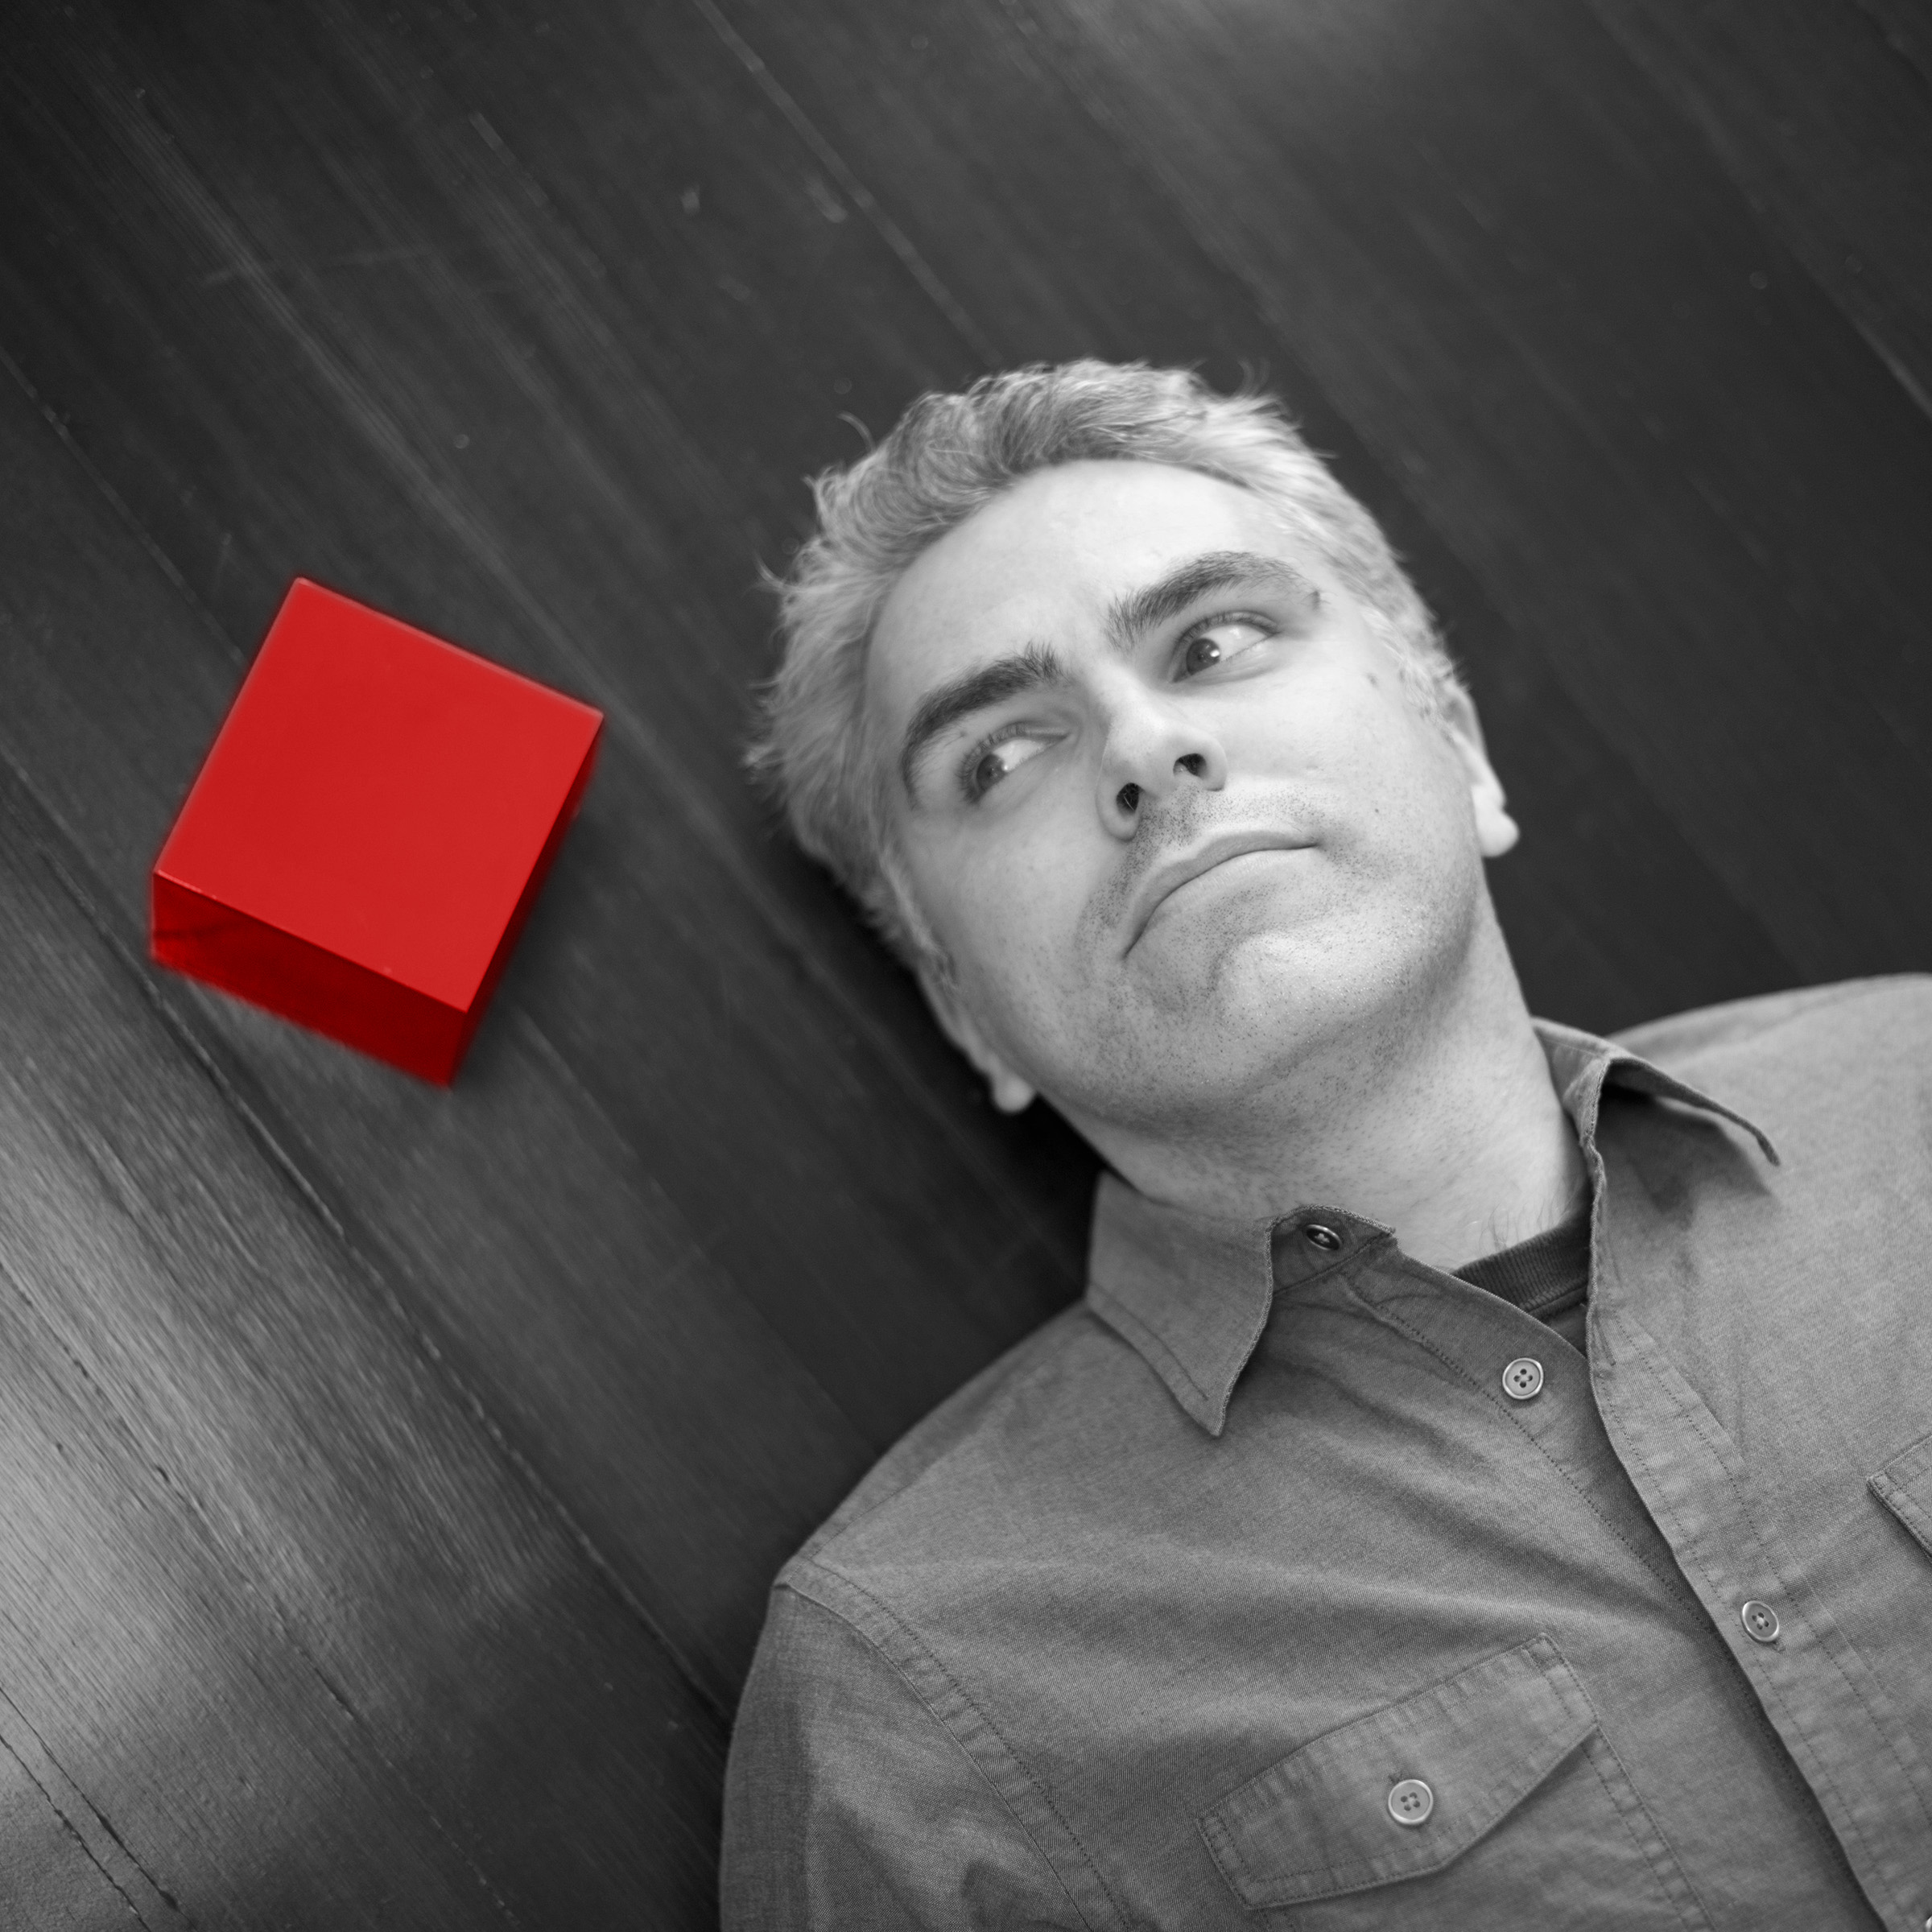 Alex Budnitz in black and white, laying on the ground, with a bright red cube on his head